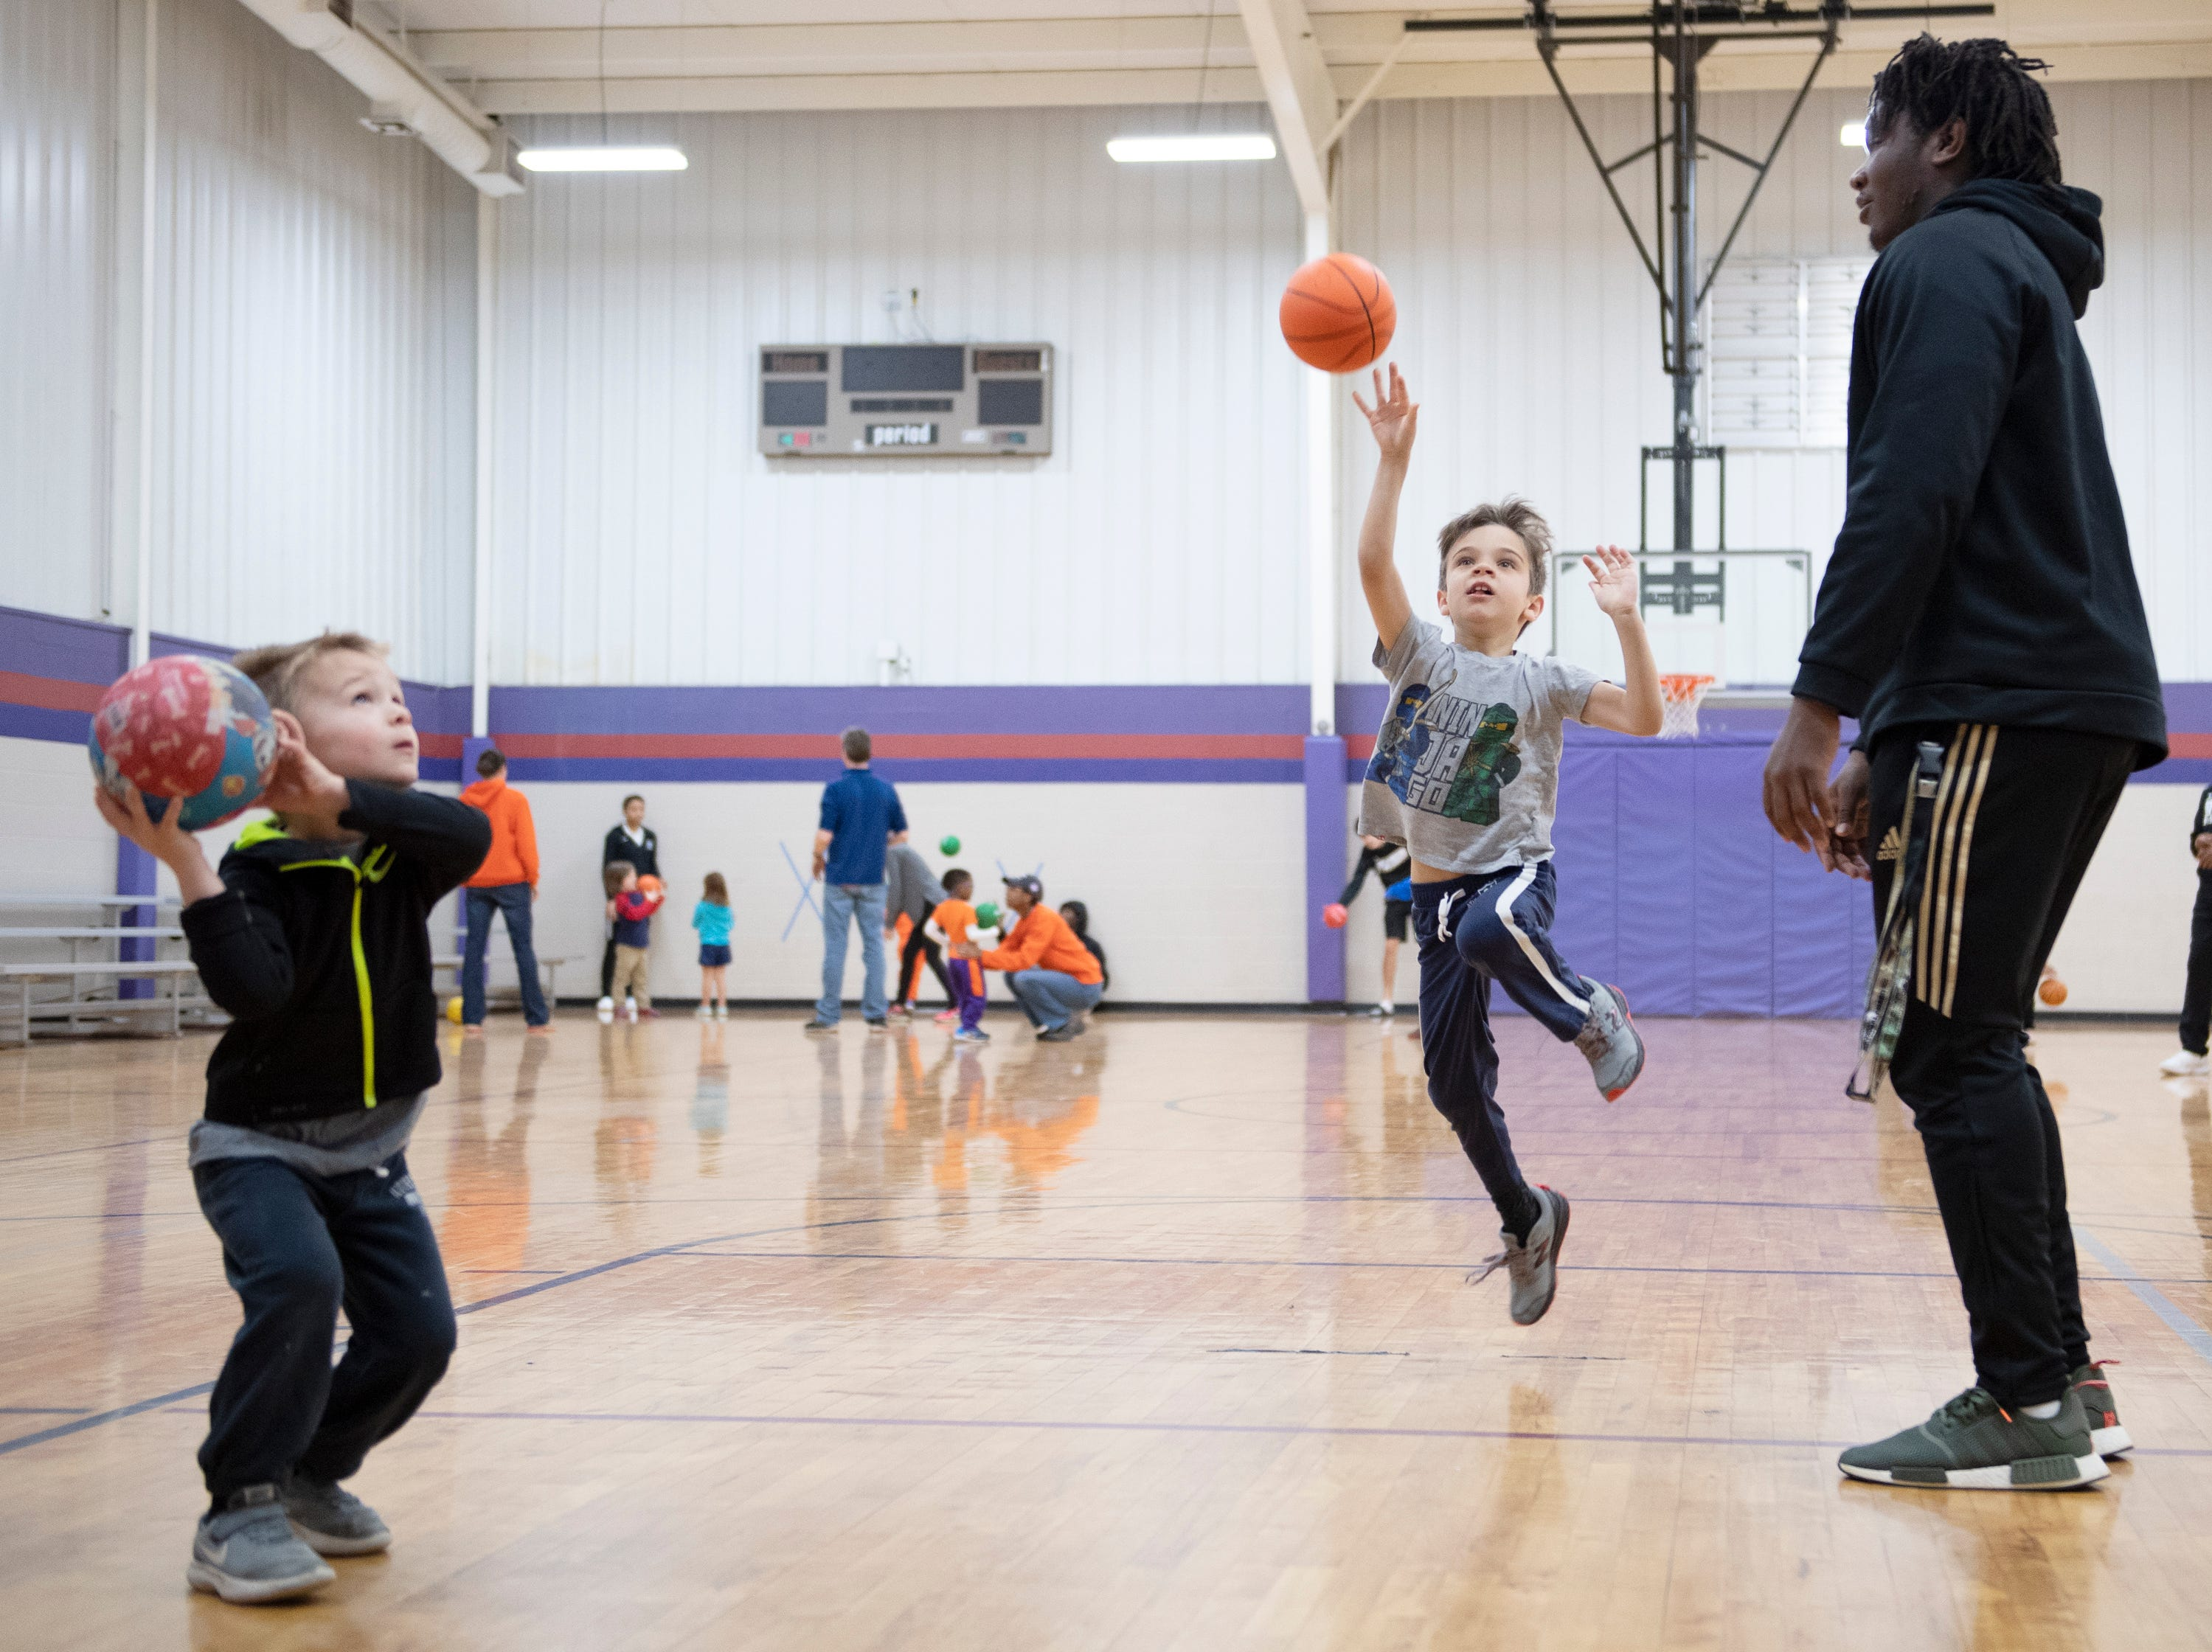 From right, D.W. Daniel High School's Jared Kirksey works with Filip Ziolkowski, 6, and Benjamin Touchberry, 4, during the Smart Start Basketball program at Central-Clemson Recreational Center Saturday, Feb. 2, 2019.